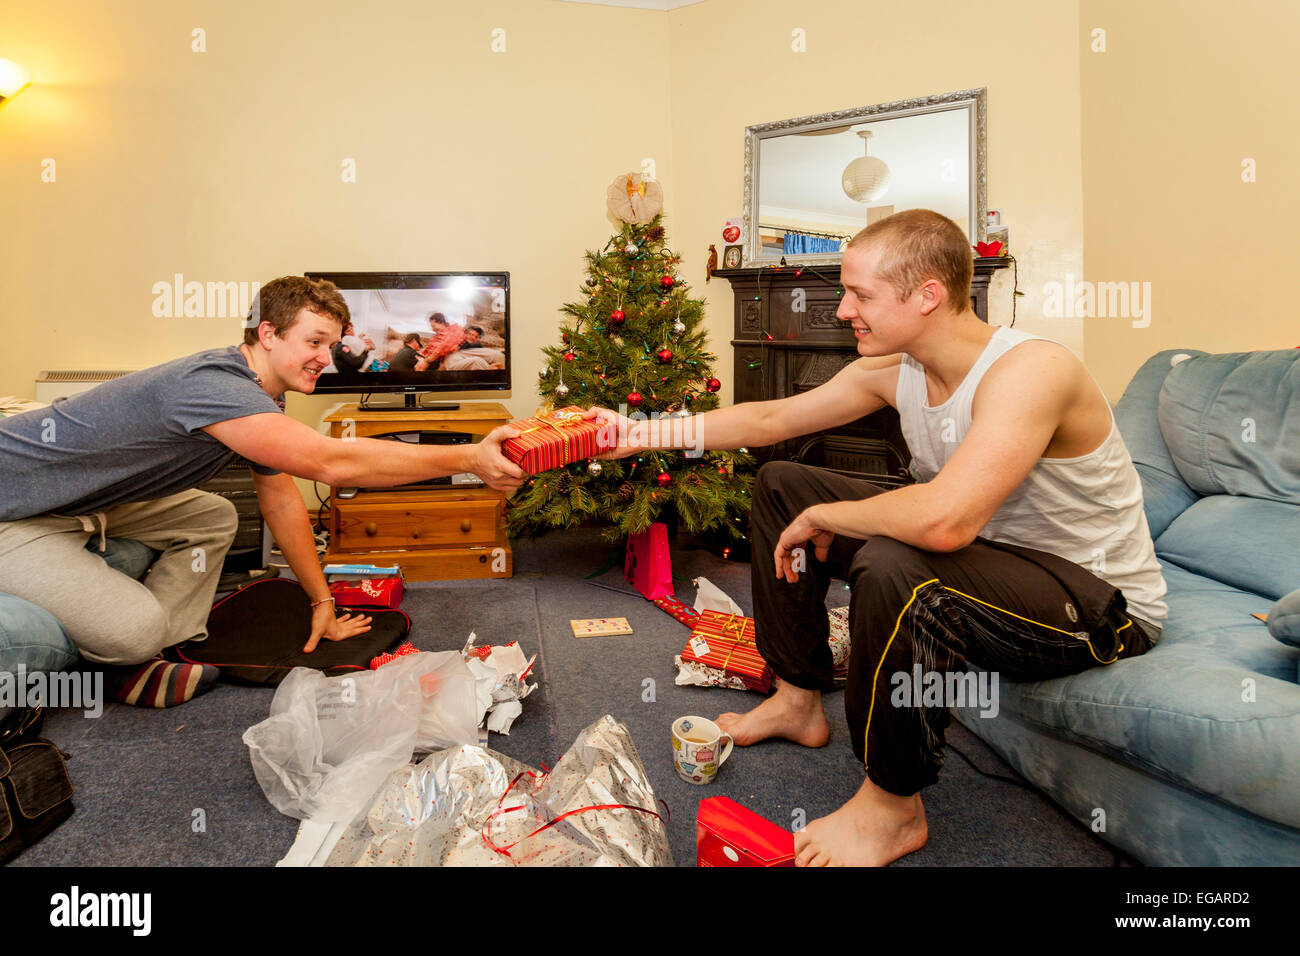 Brothers Exchanging Gifts On Christmas Day, Sussex, England - Stock Image